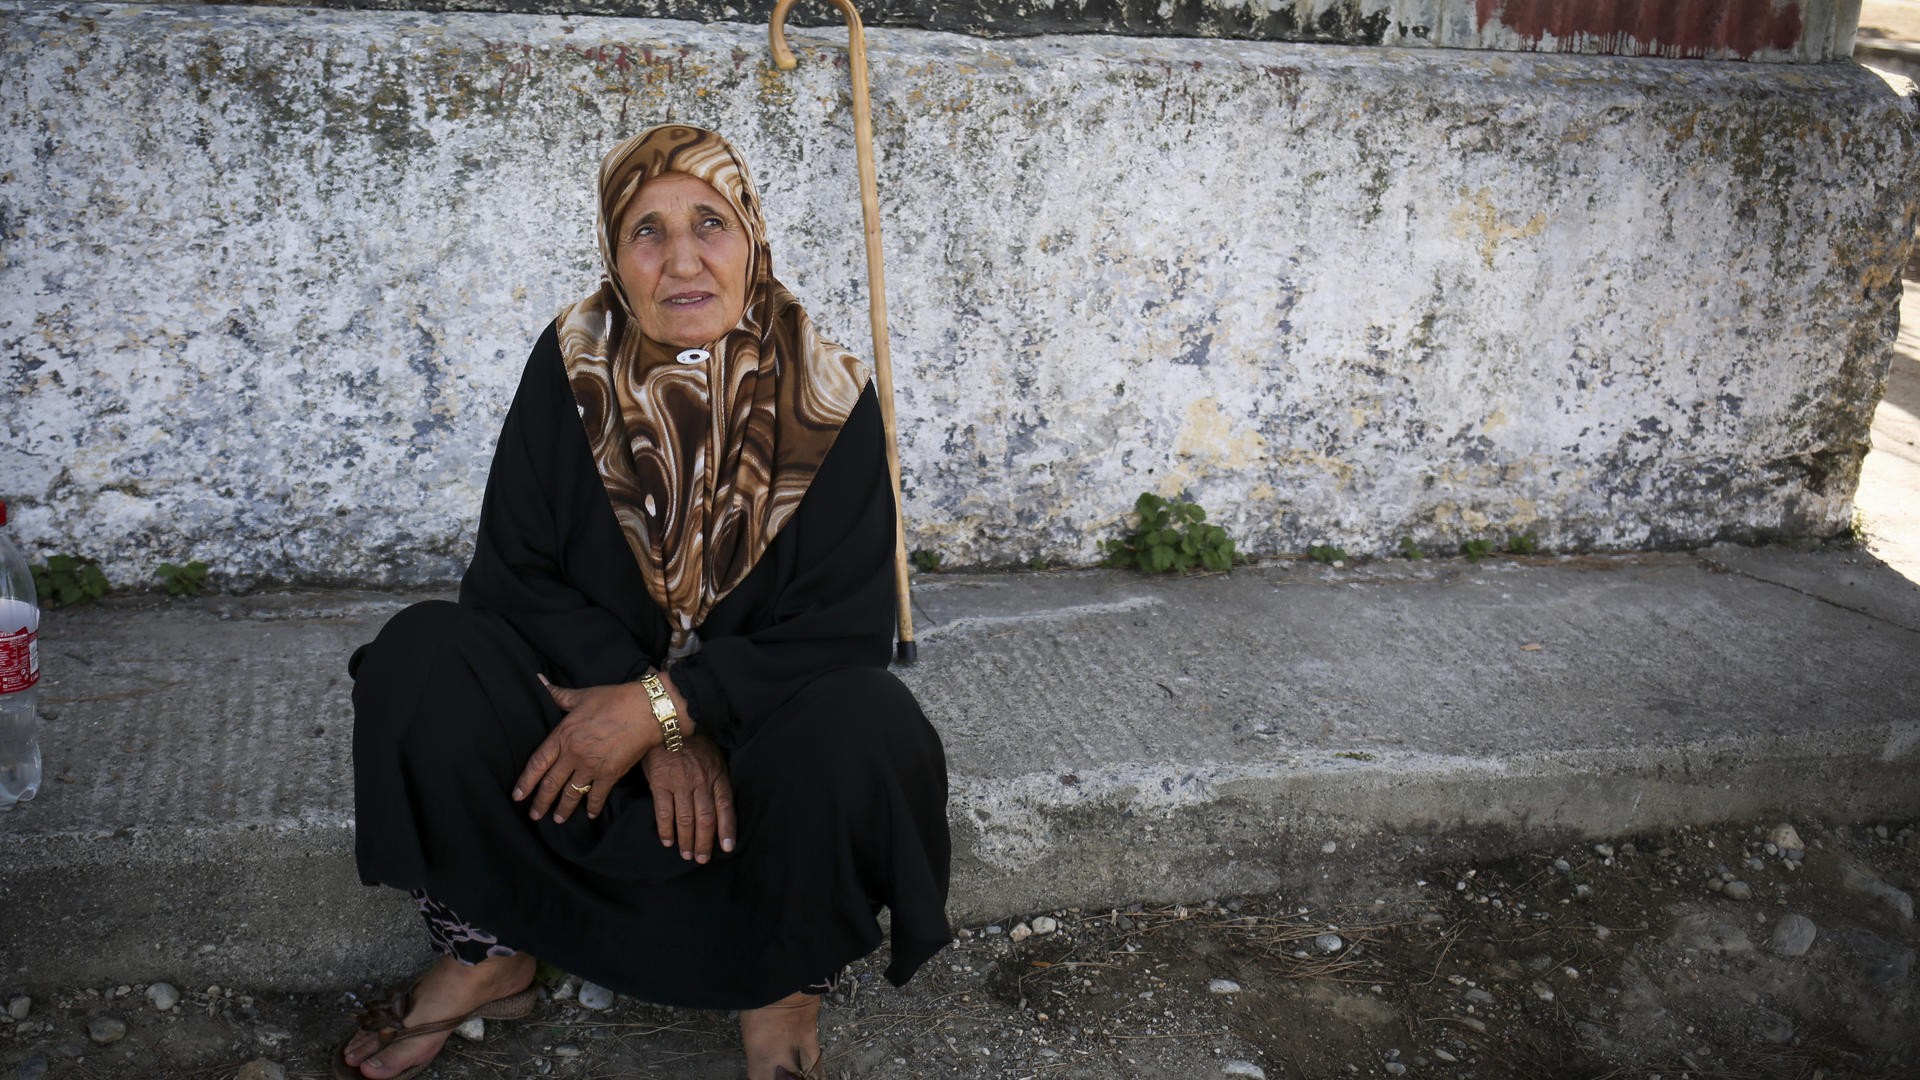 Sixty-year-old Marian* lost her only son to the war in Syria